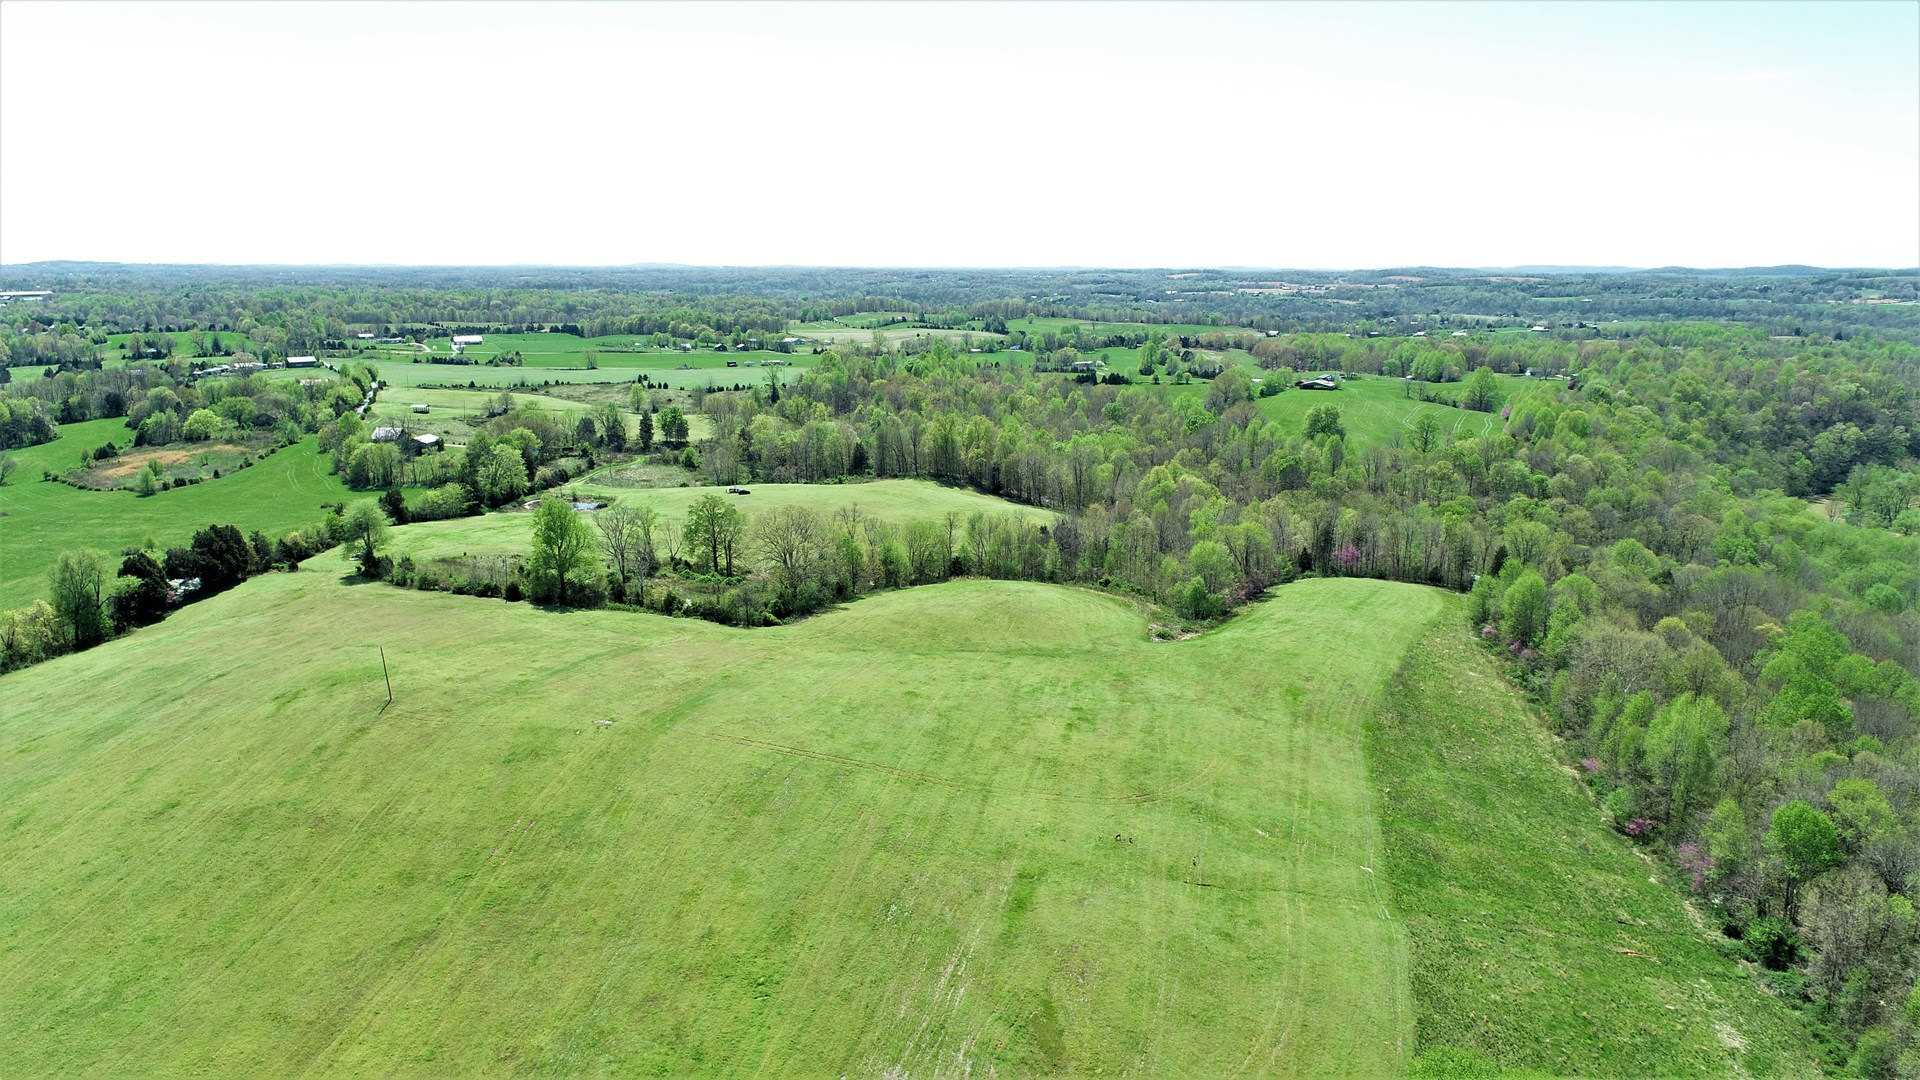 79 Acres For Sale in Green County, KY